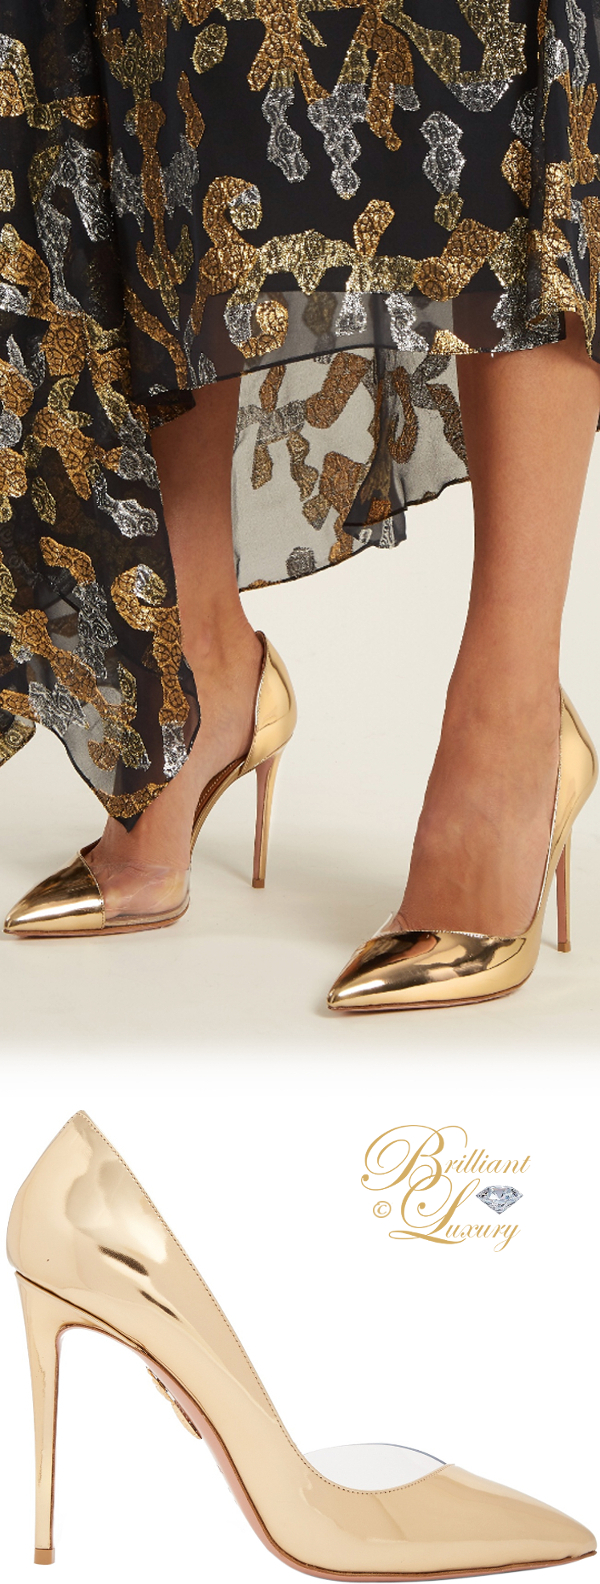 Brilliant Luxury ♦ Aquazzura Eclipse point-toe leather pumps